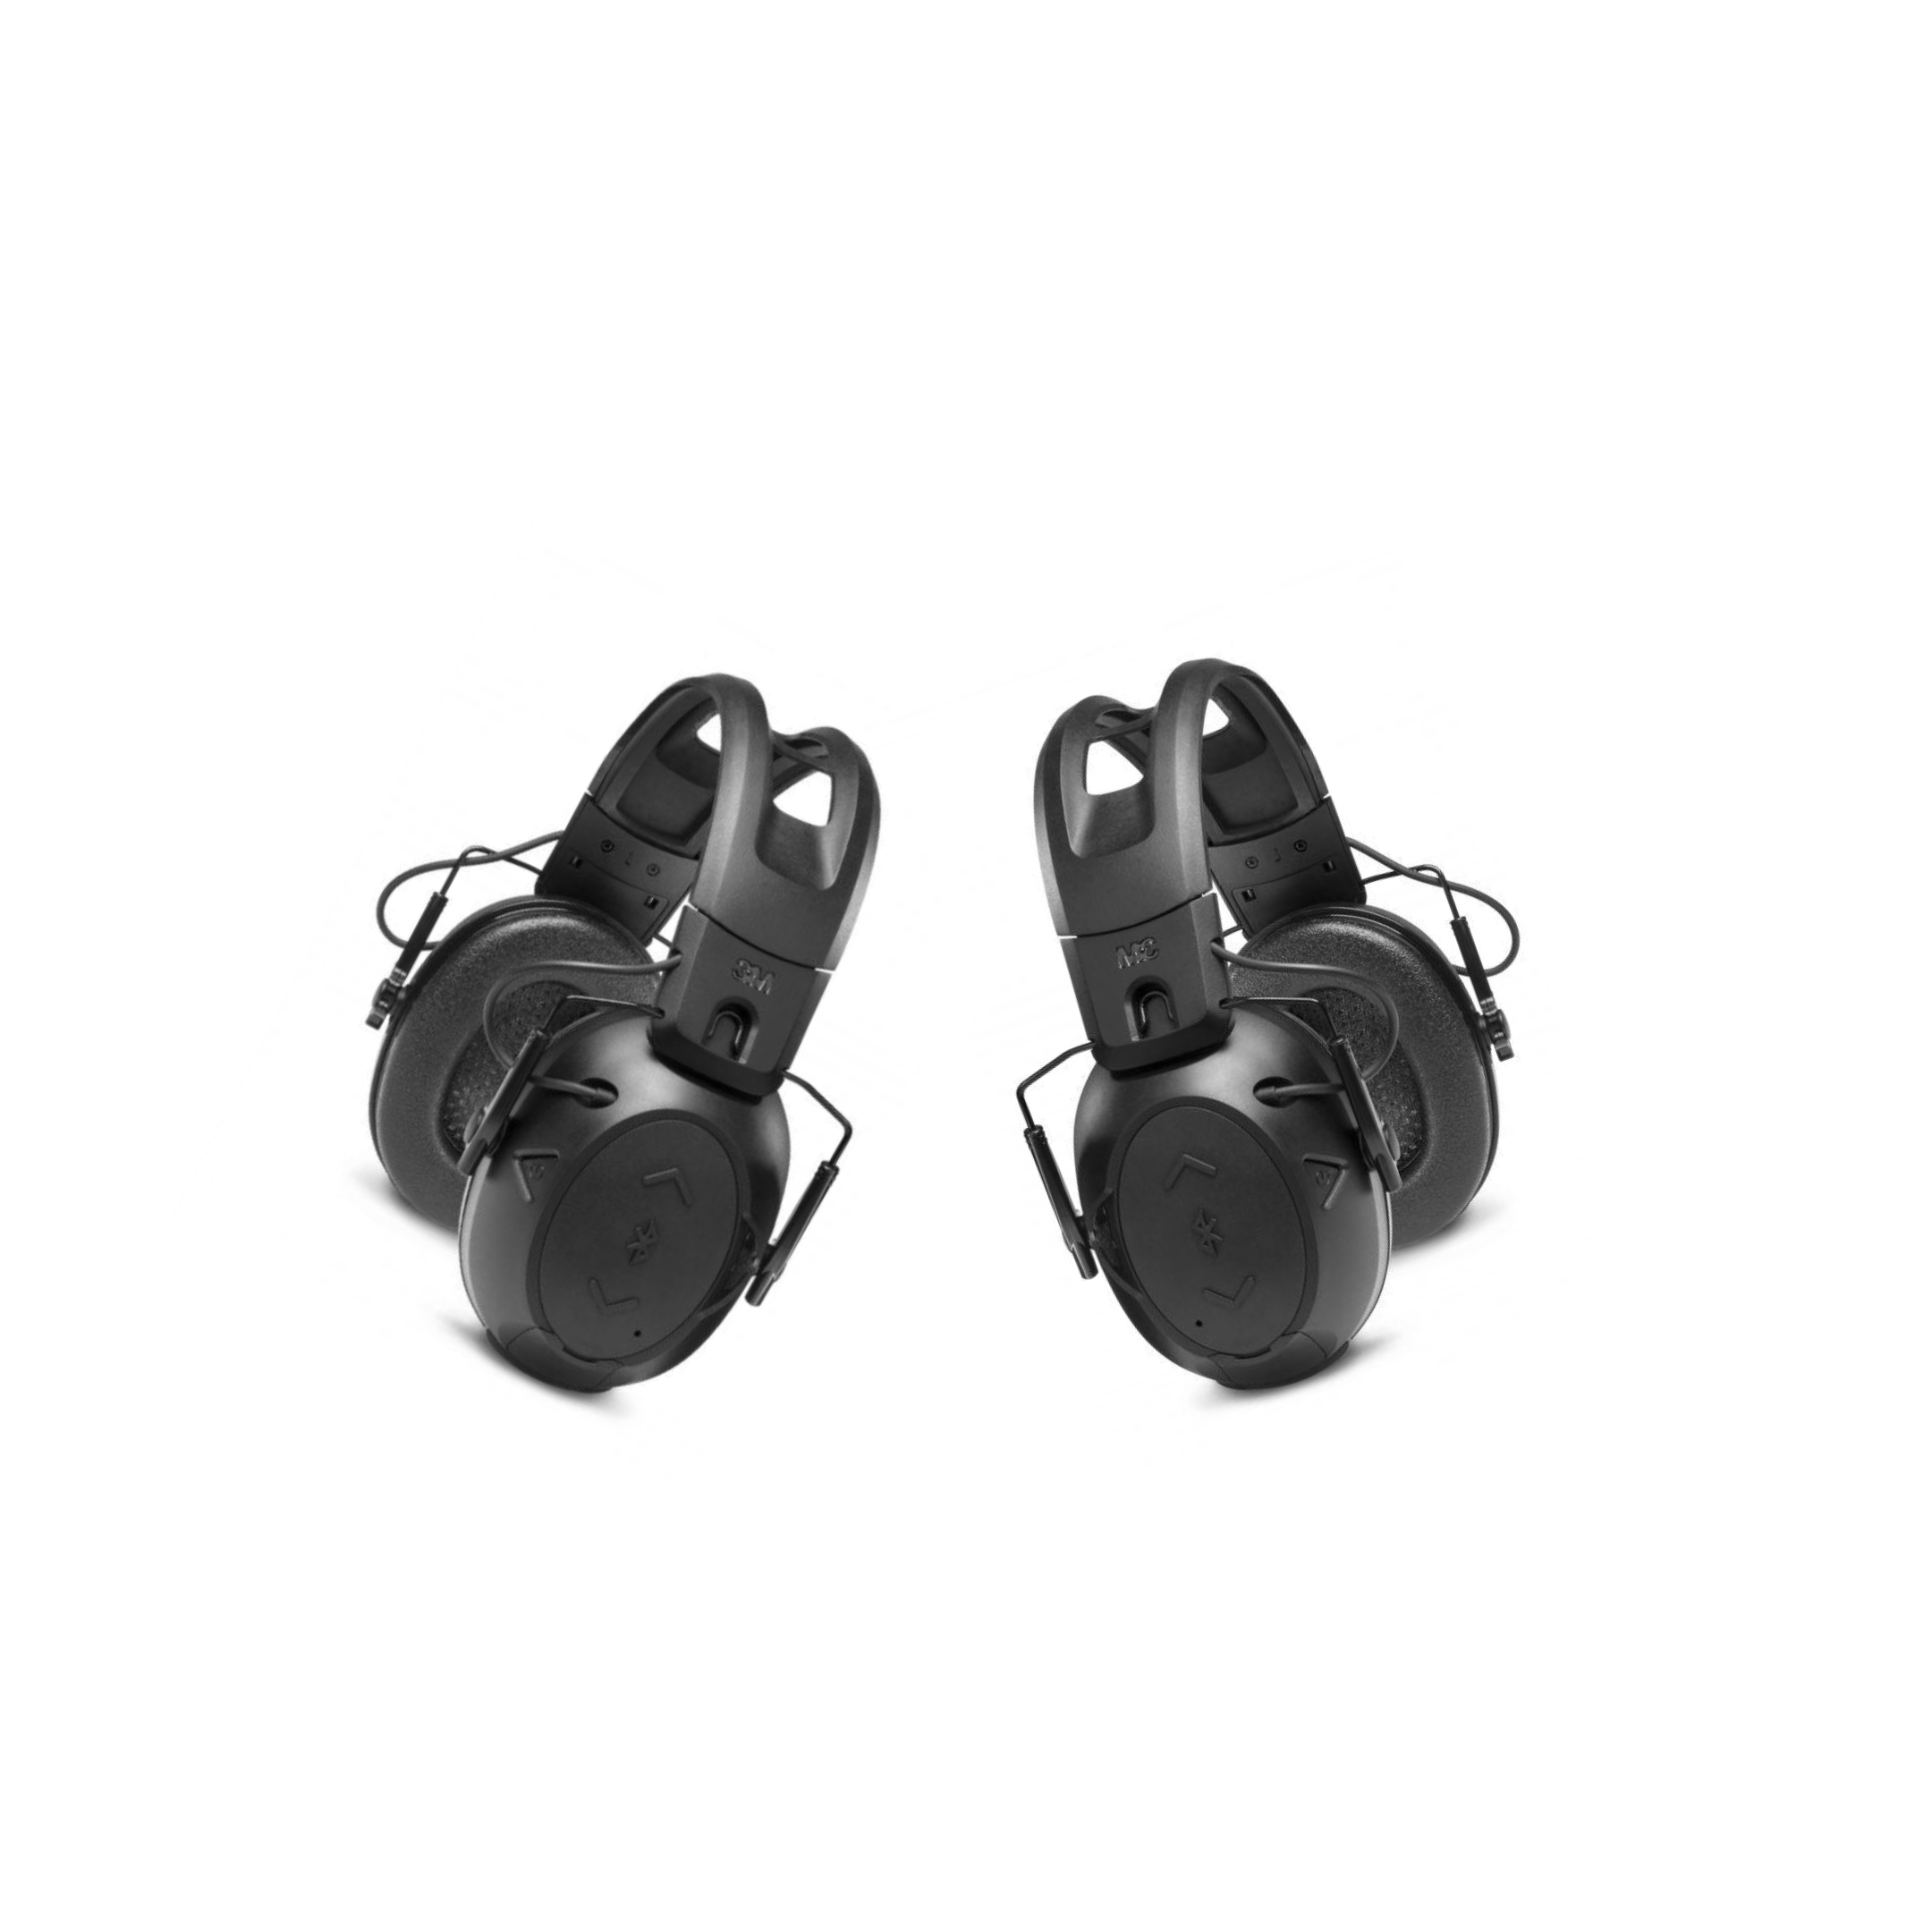 A Pair of Black Peltor Sport Tactical 500 Electronic Hearing Protector for hunting